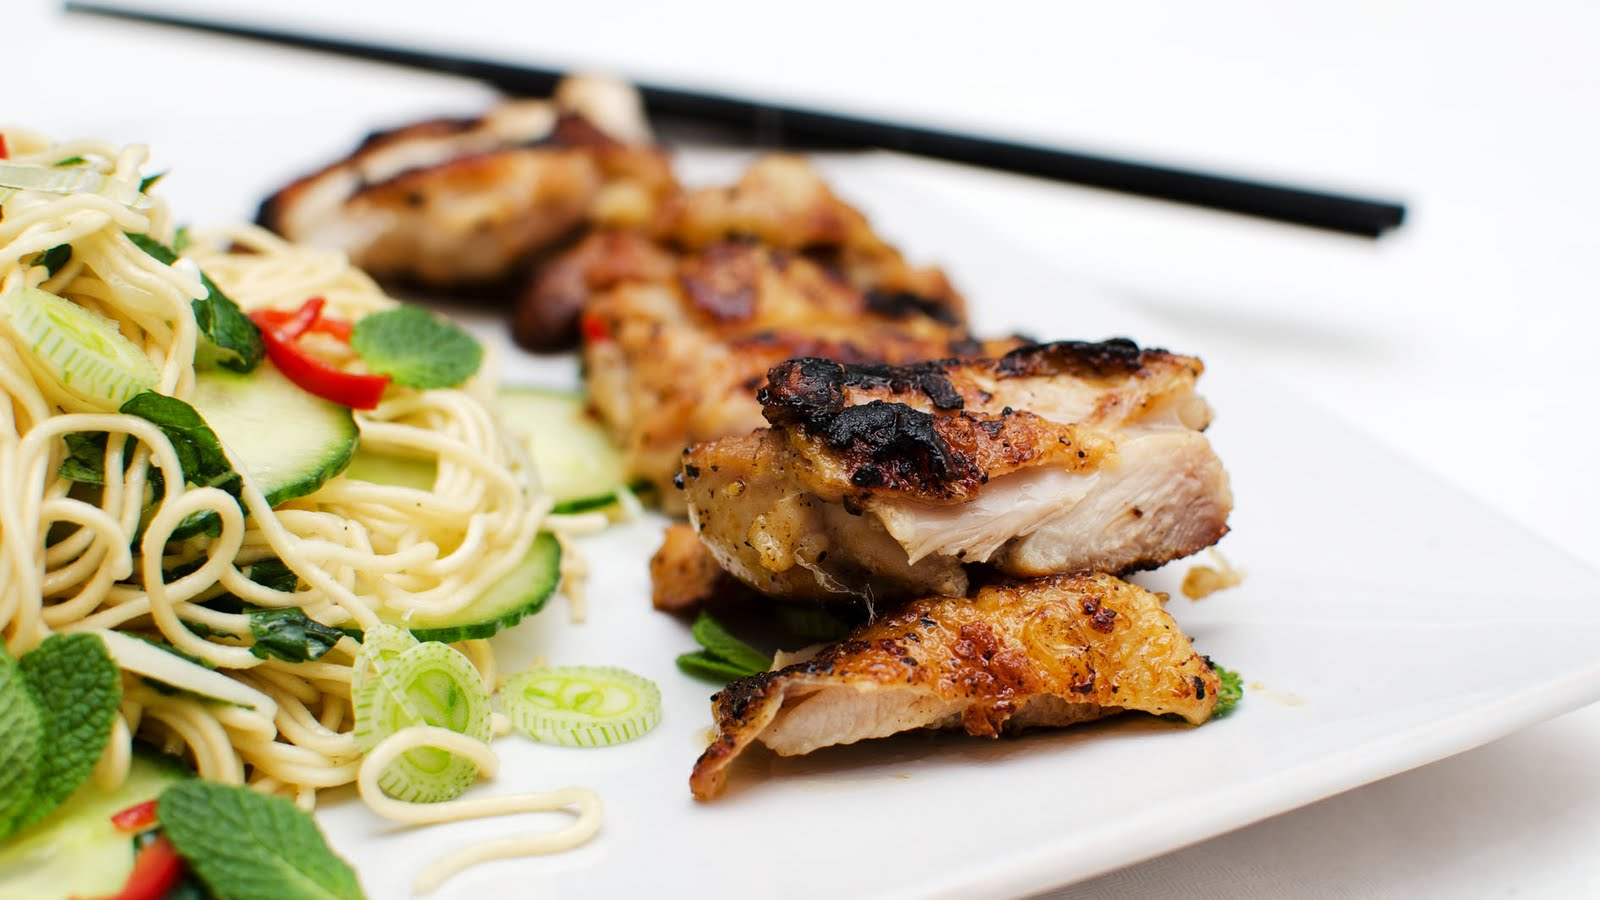 stuart webster photography: Spicy chicken thighs with cucumber salad